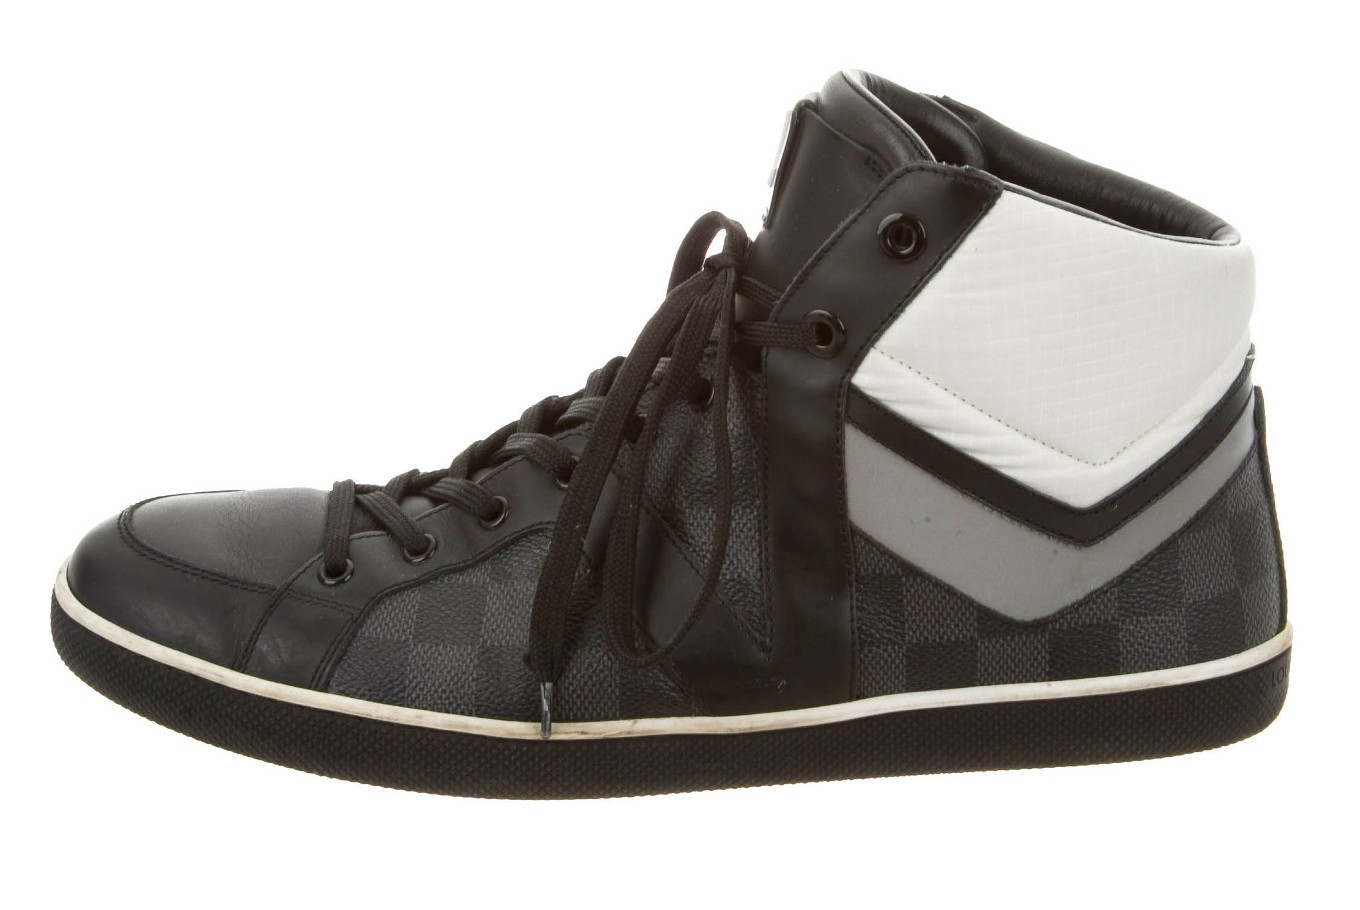 b9fd86e0 This Louis Vuitton sneaker is Silicon Valley's latest status symbol ...